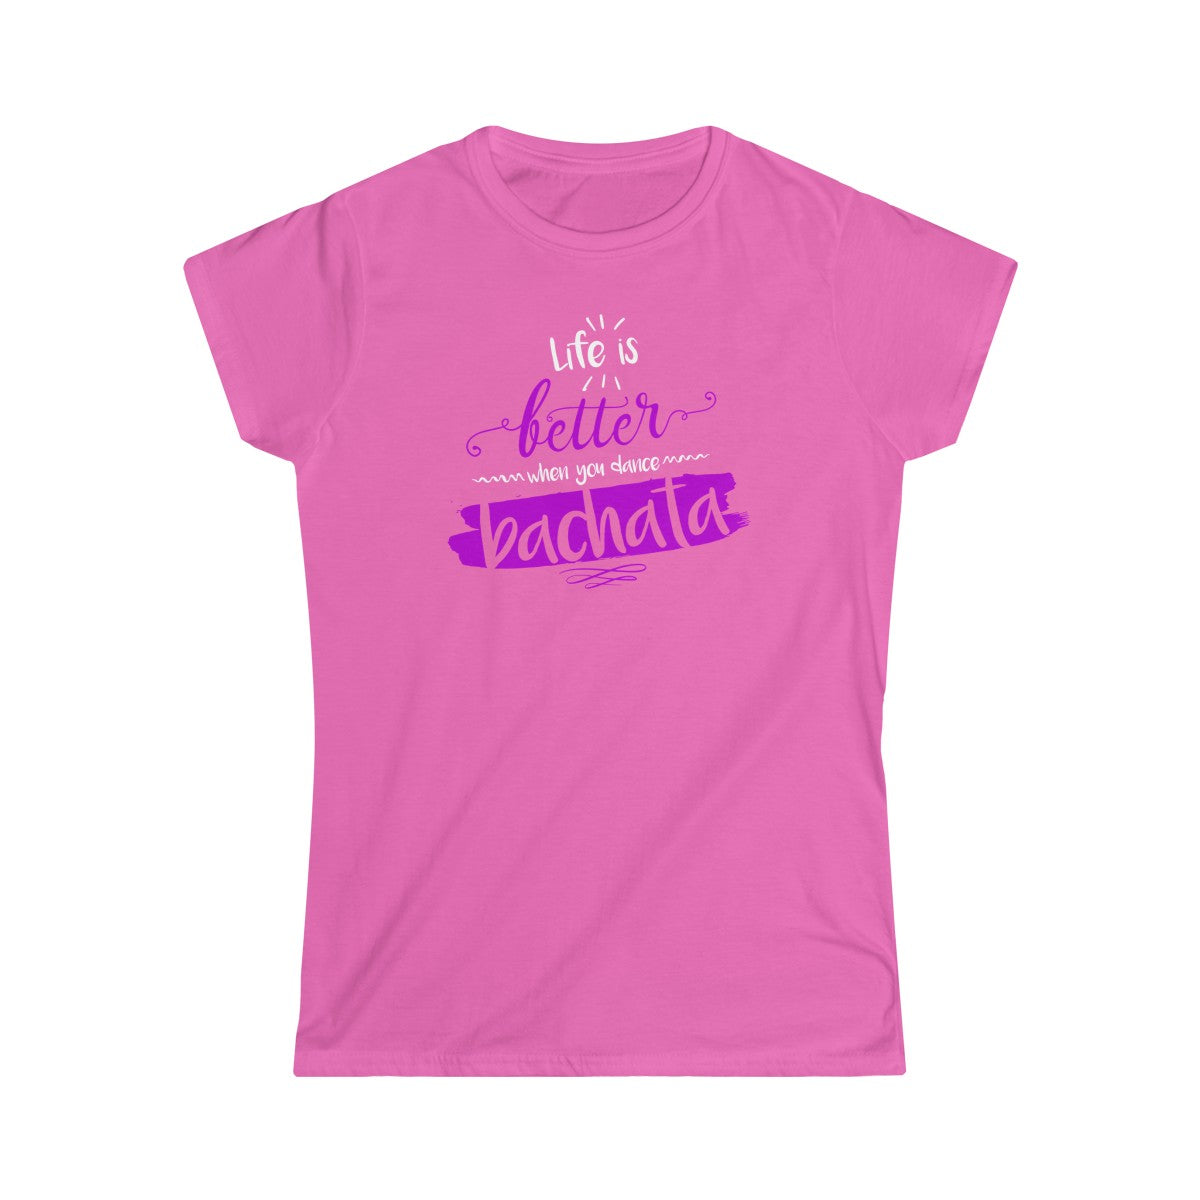 Life Is Better When You Dance Bachata Woman T-Shirt in White